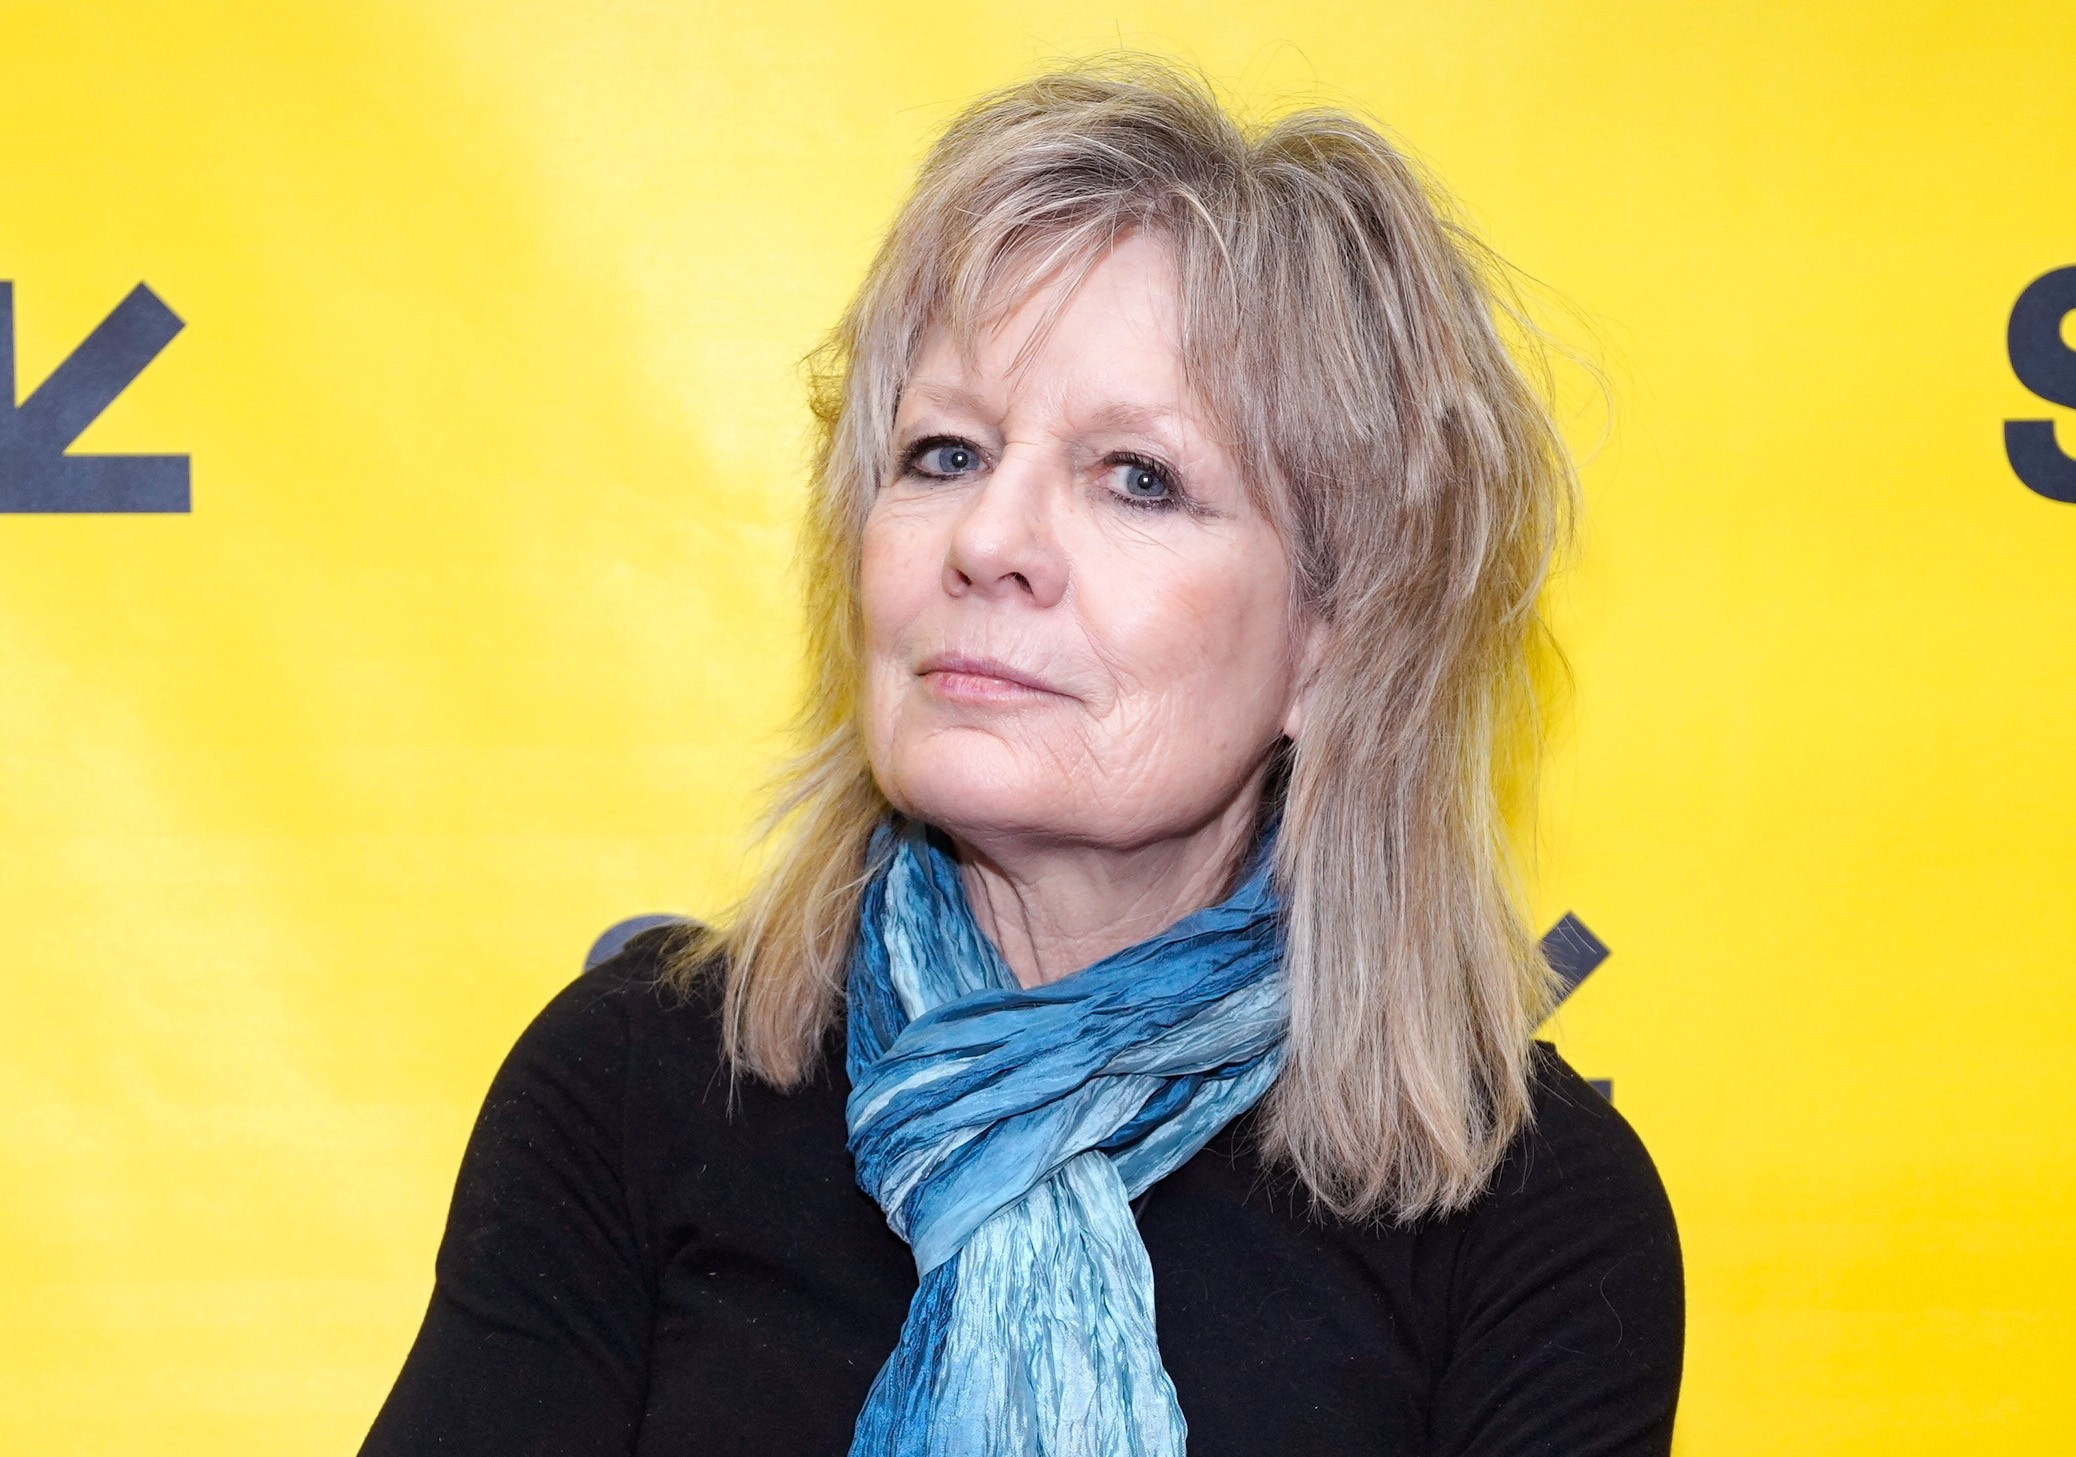 Tina Weymouth of Talking Heads, Tom Tom Club Inducted Into